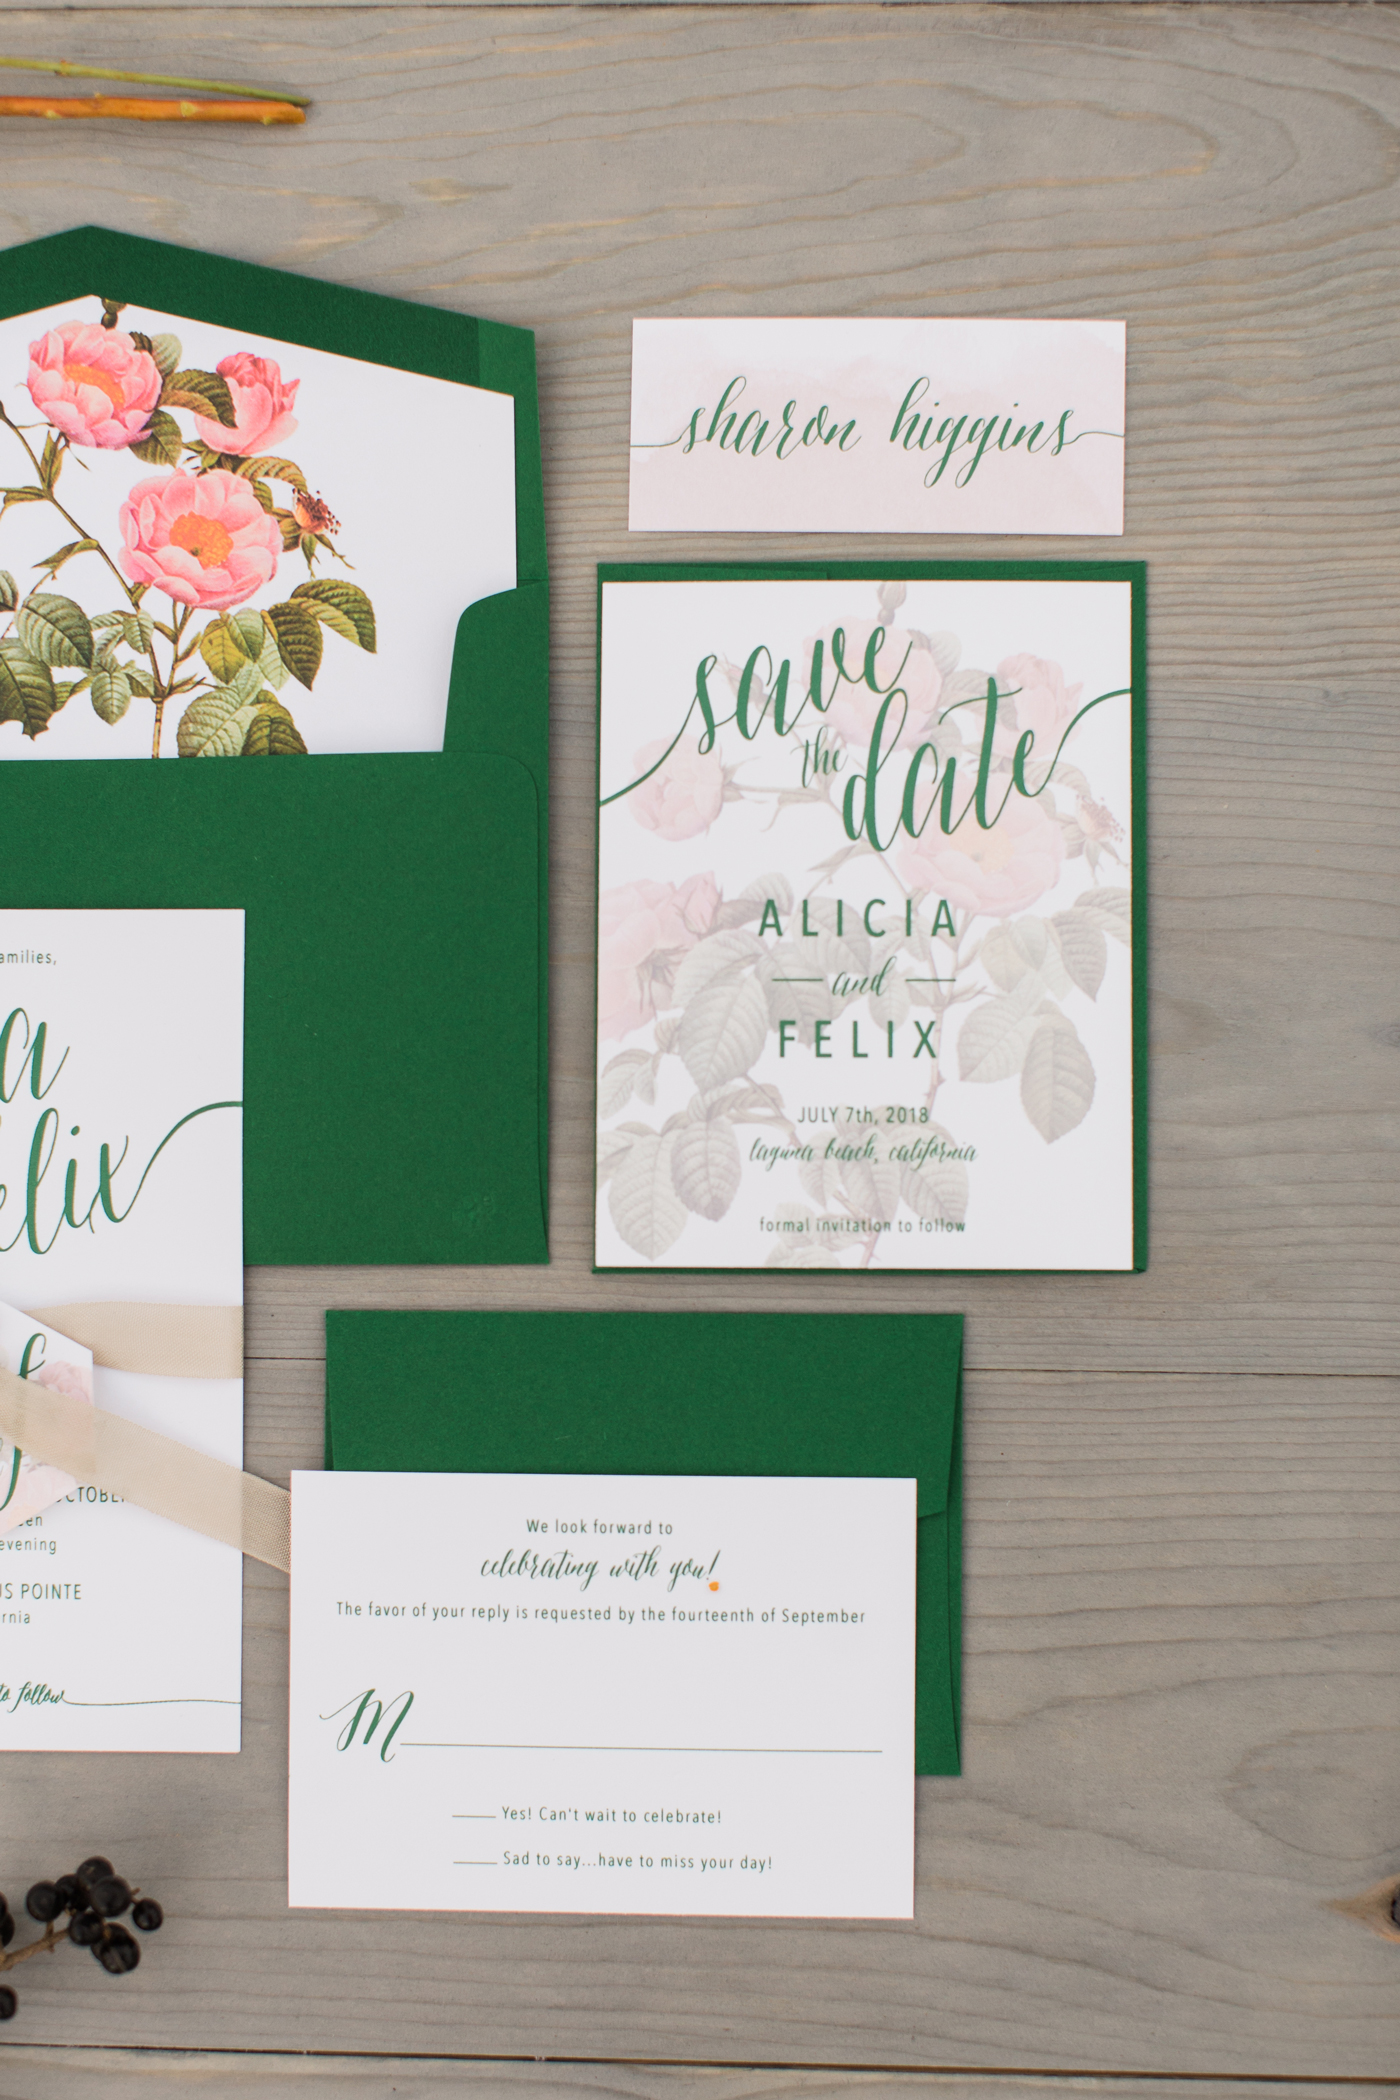 green and white stationary save the dates with pink floral design